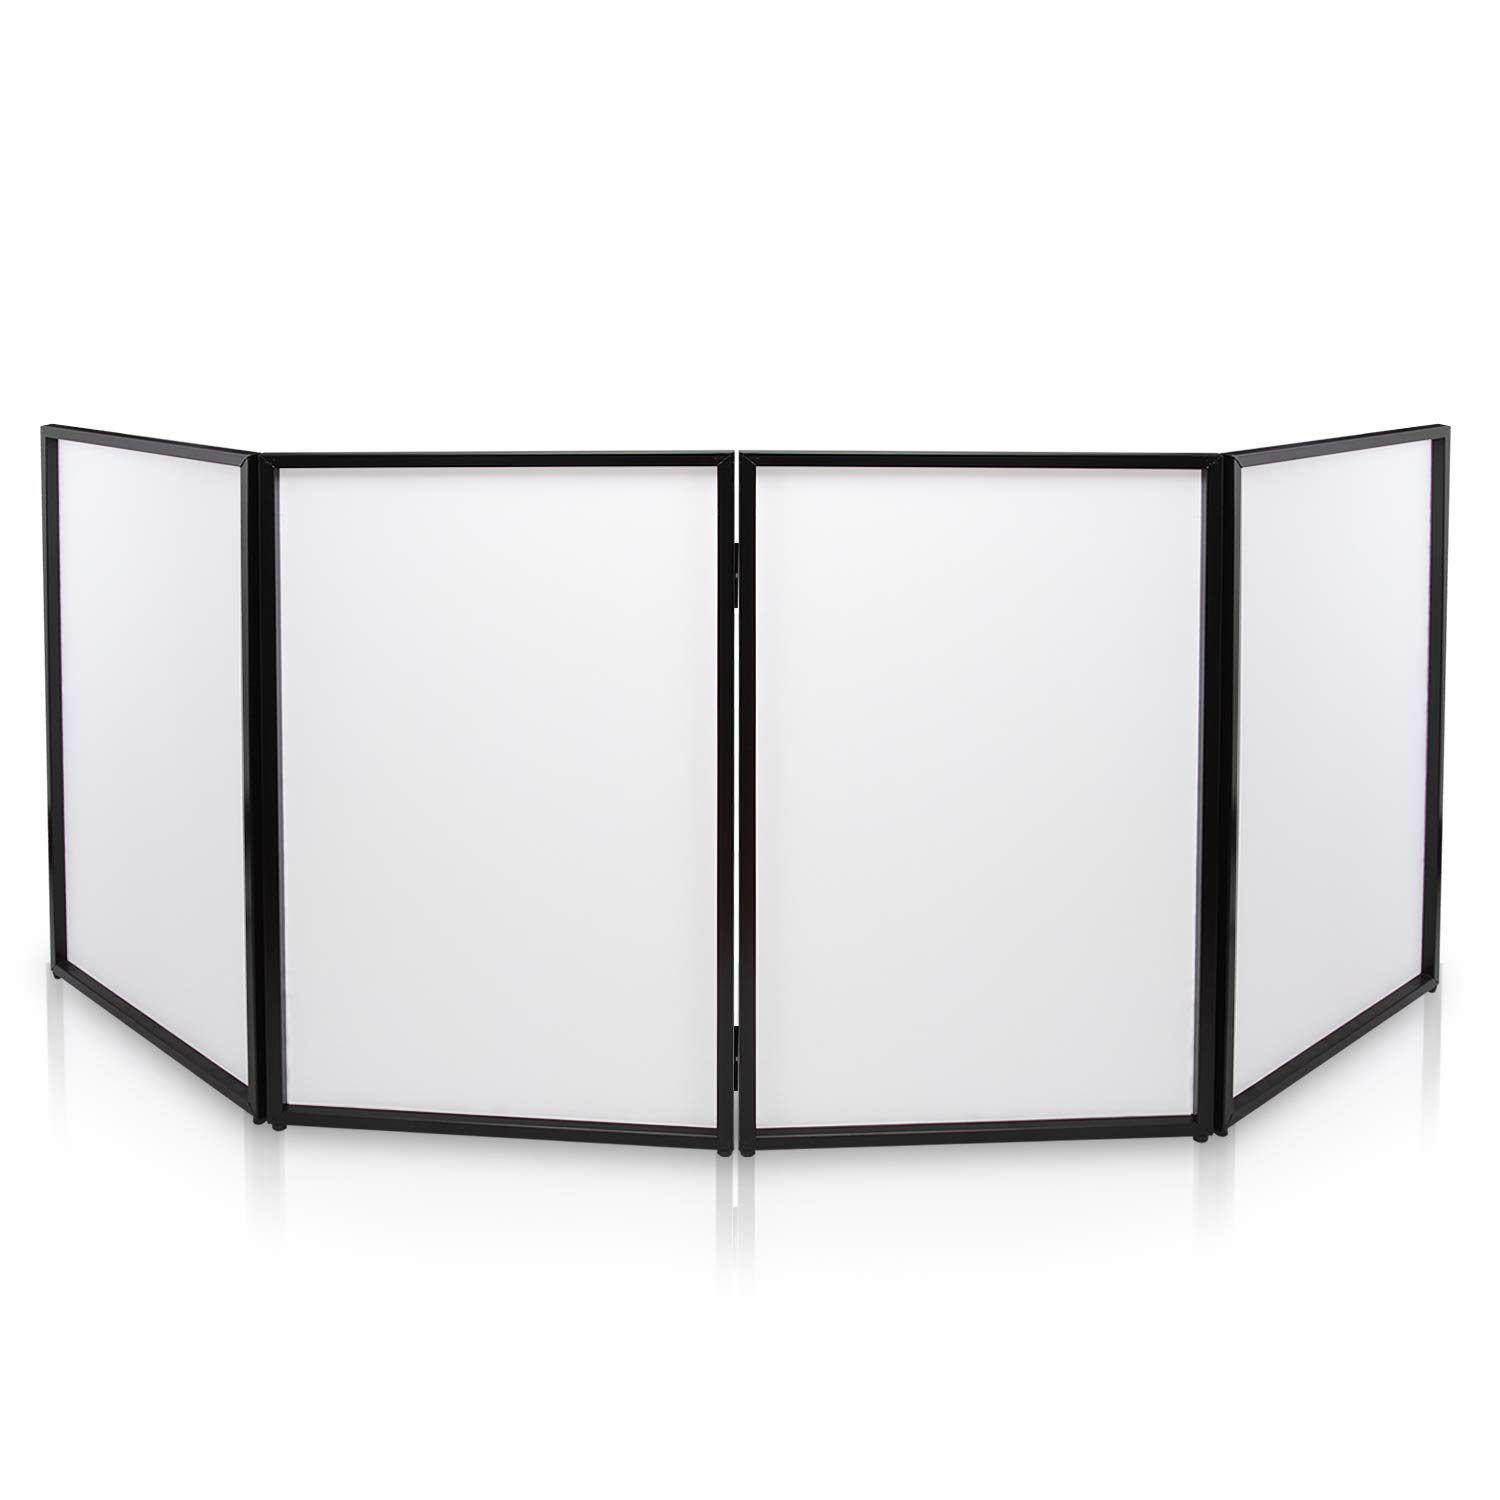 DJ Booth Foldable Cover Screen - Portable Event Facade Front Board Video Light Projector Display Scrim Panel Folding Steel Frame Panel Stand, Stretchable Lycra Spandex - Pyle PDJFAC10 (White) Sound Around